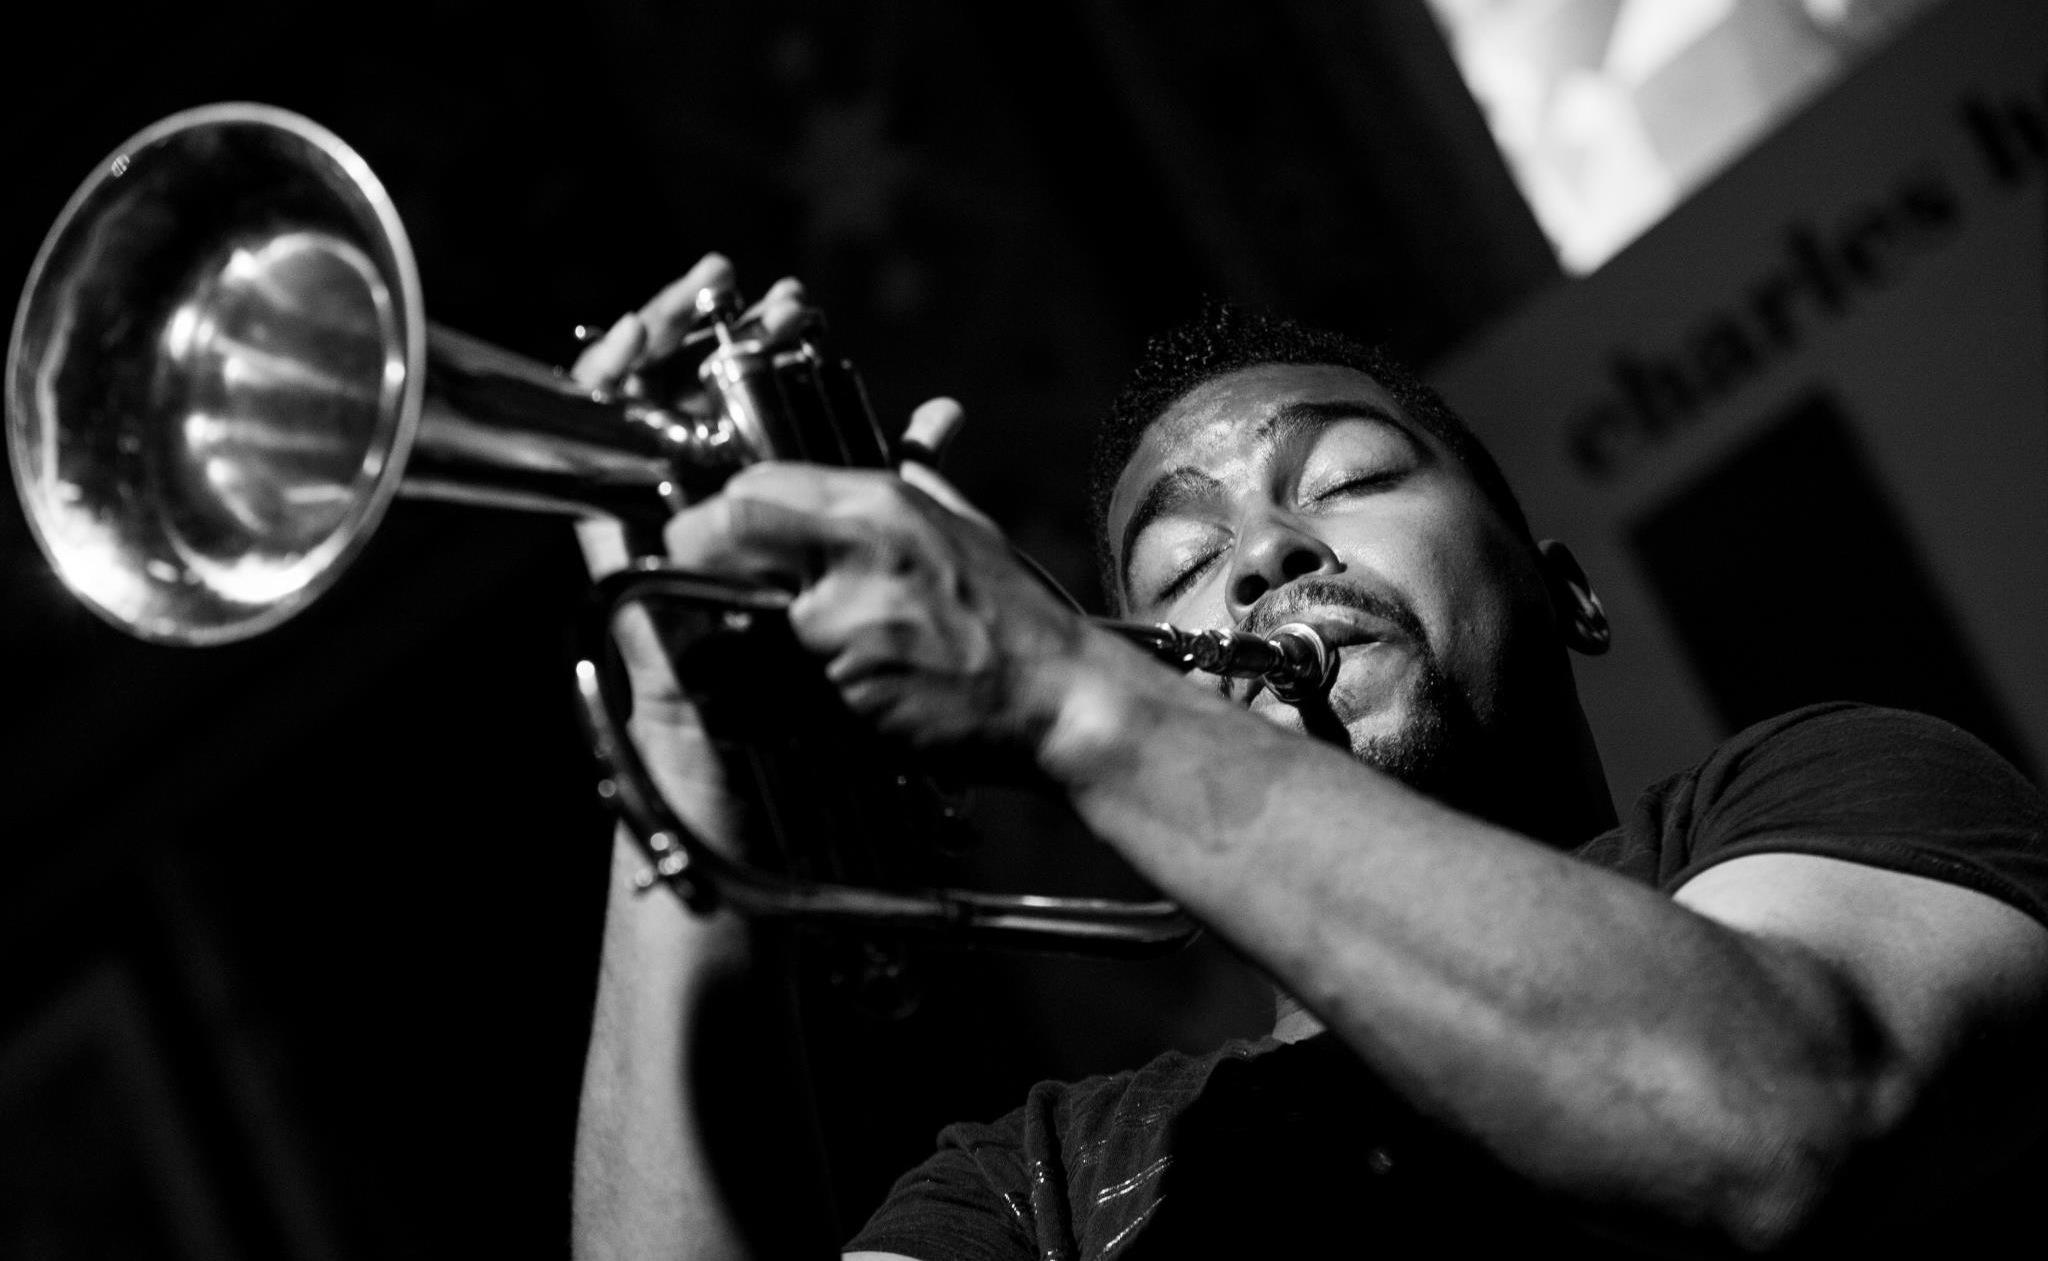 Black-and-white portrait of a man playing the trumpet with eyes closed